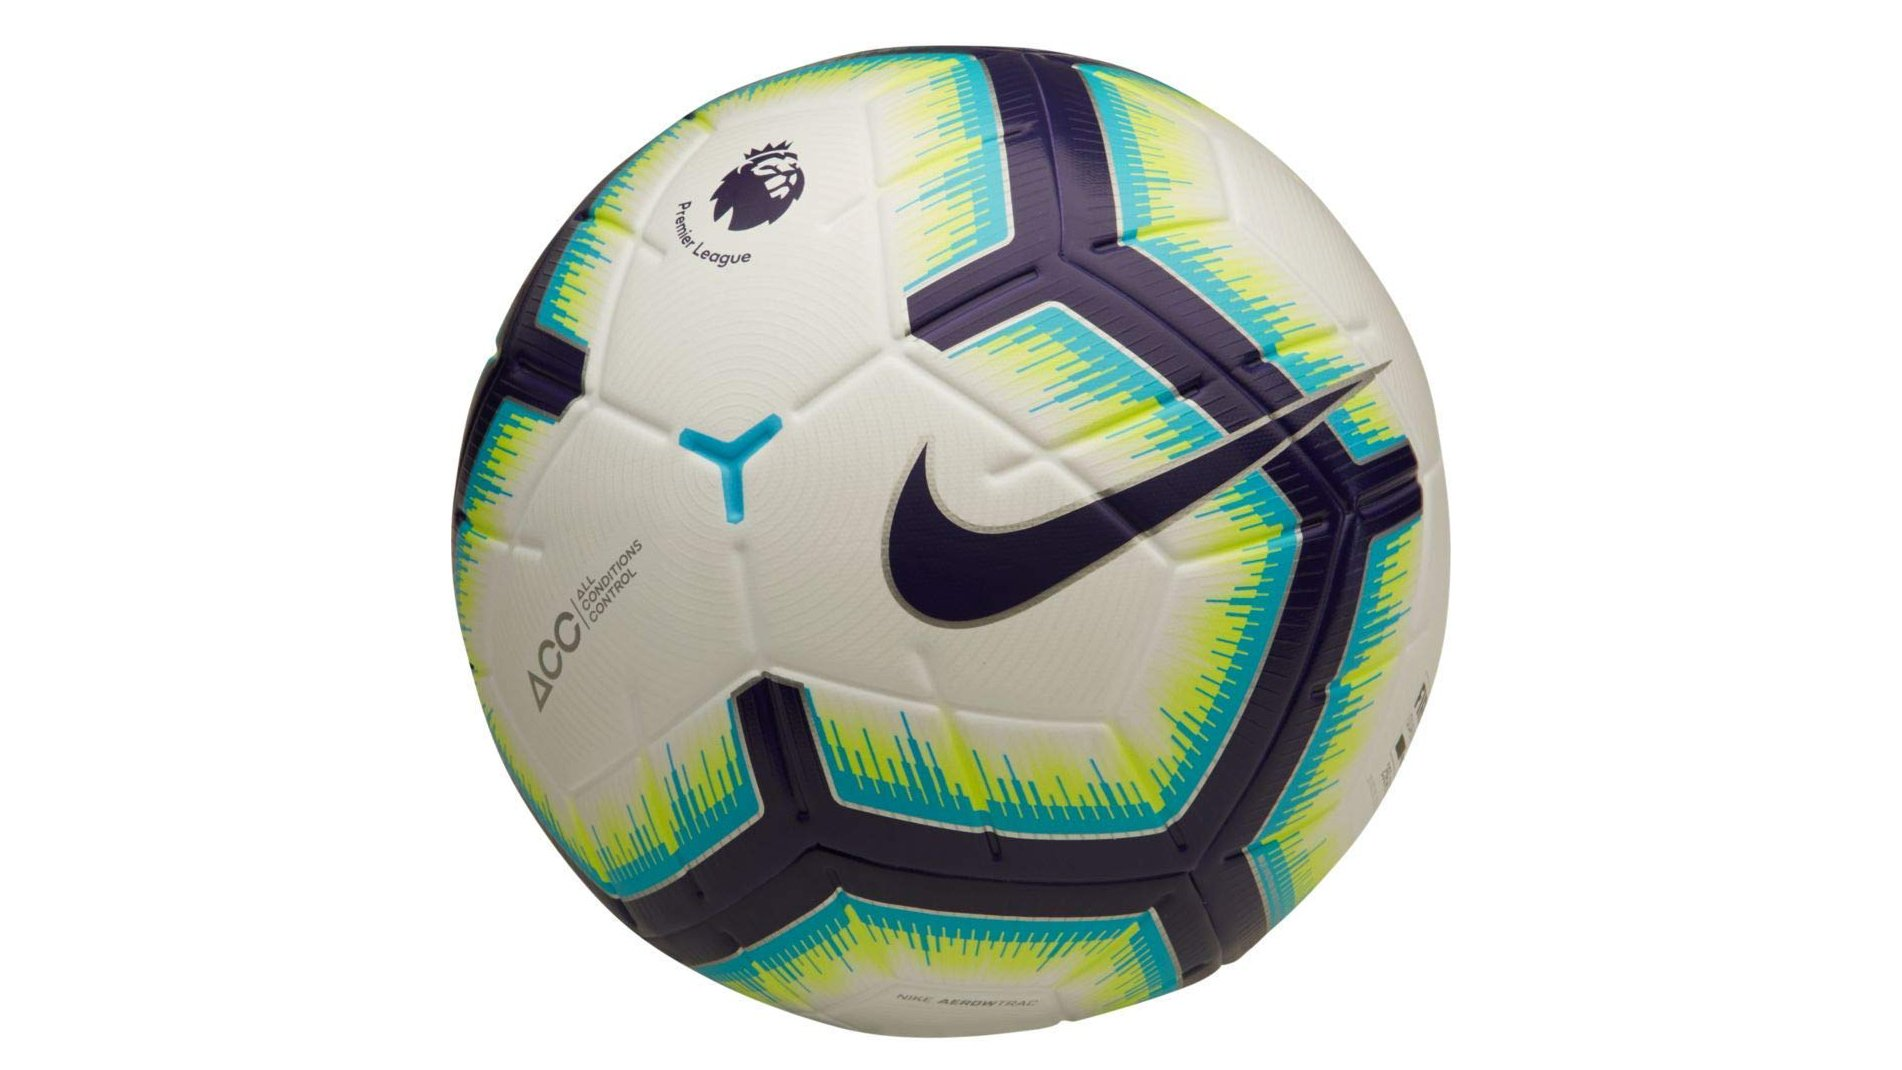 c824eb976884e Best football 2019: The perfect footballs for training, matches ...